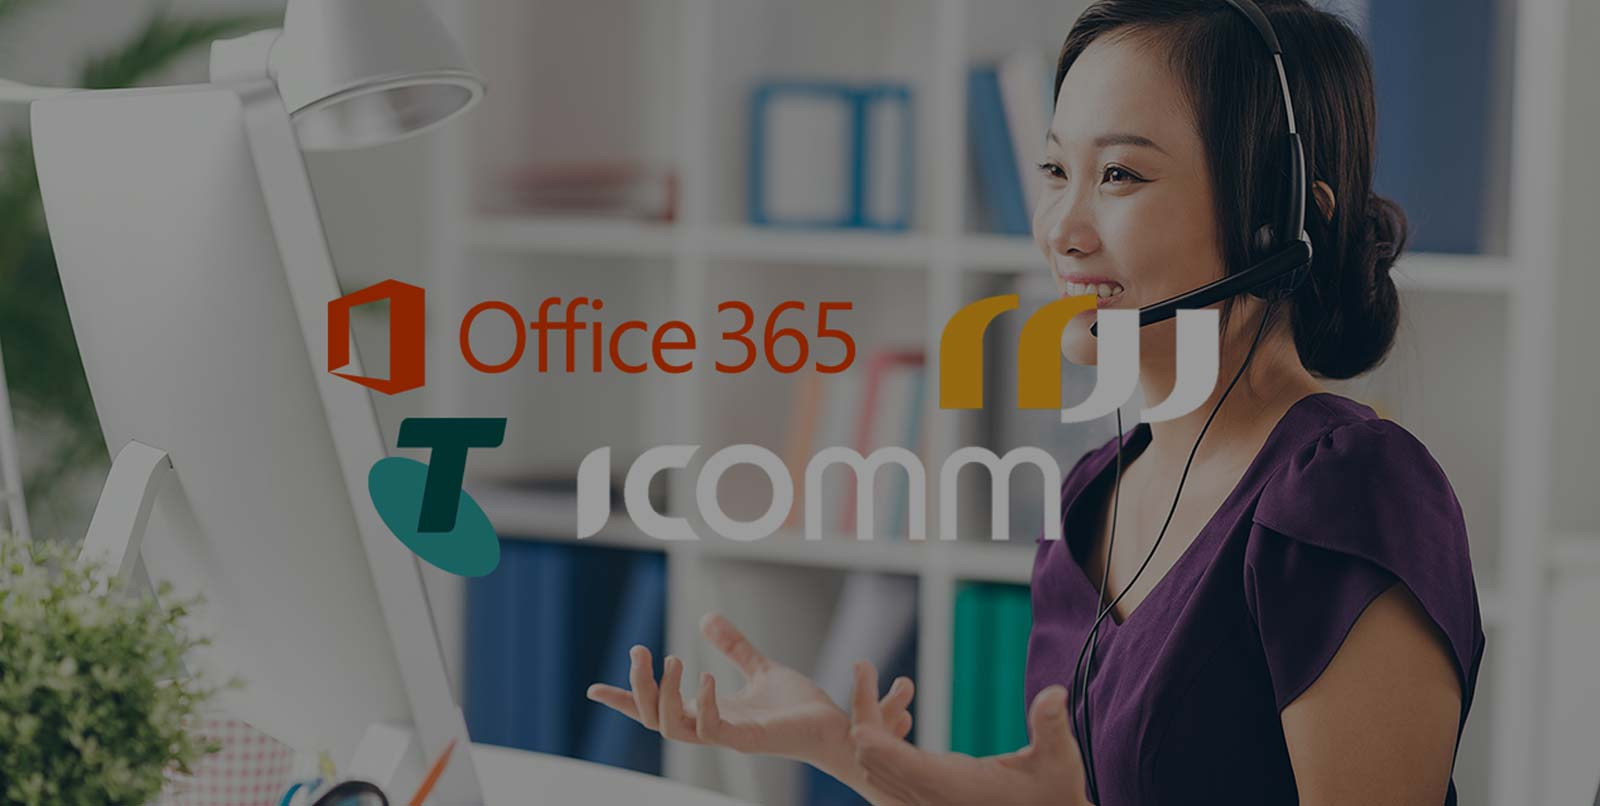 Telstra Calling For Office 365 Announced | ICOMM